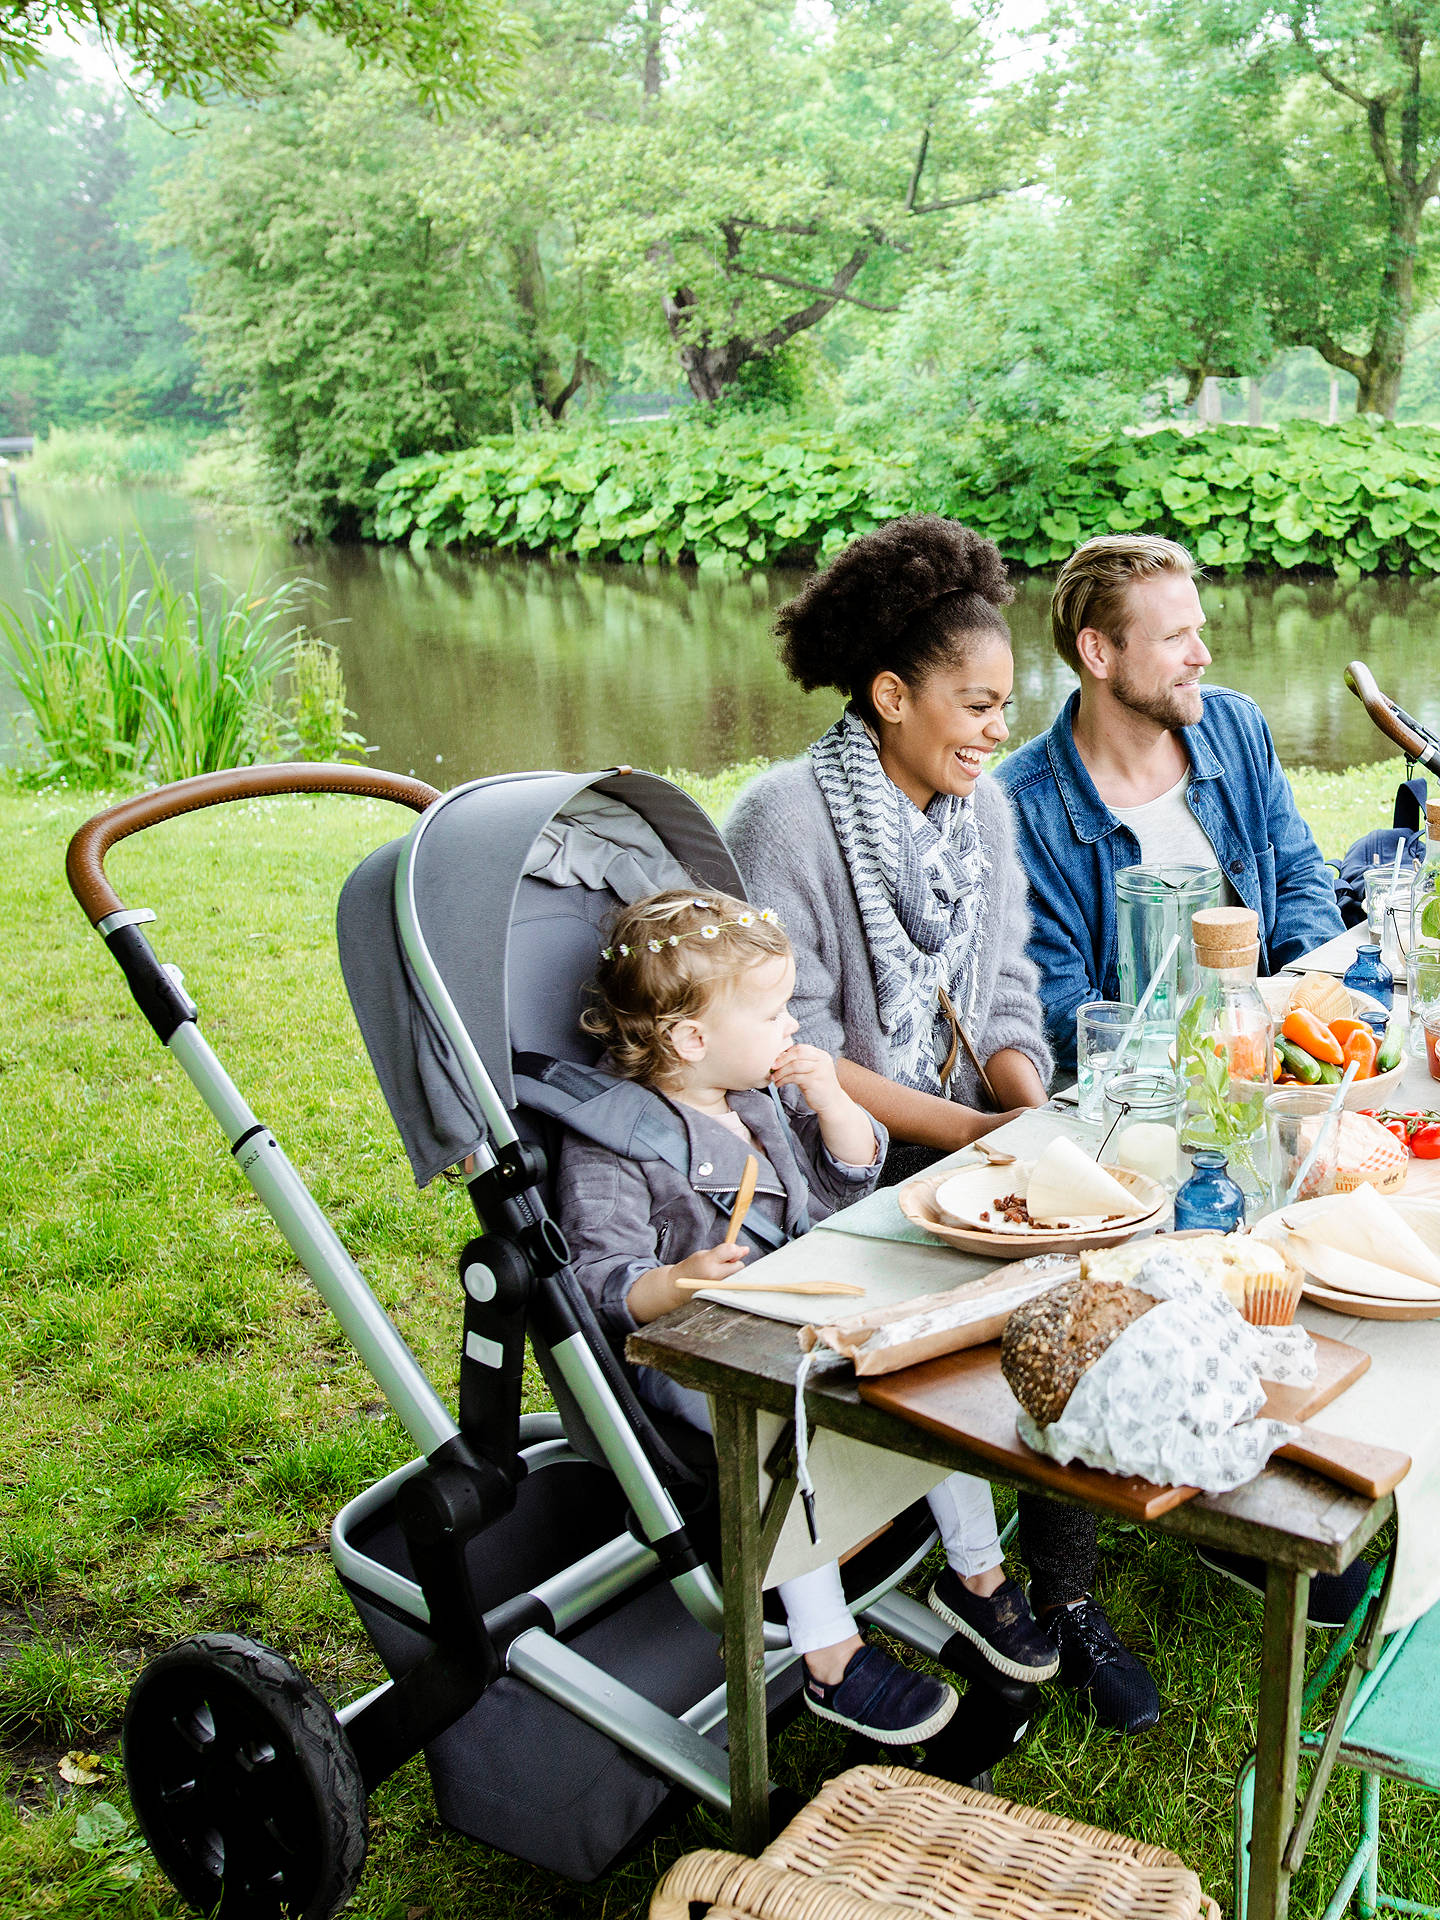 Buy Joolz Day3 Pushchair with Carrycot, Hippo Grey Online at johnlewis.com